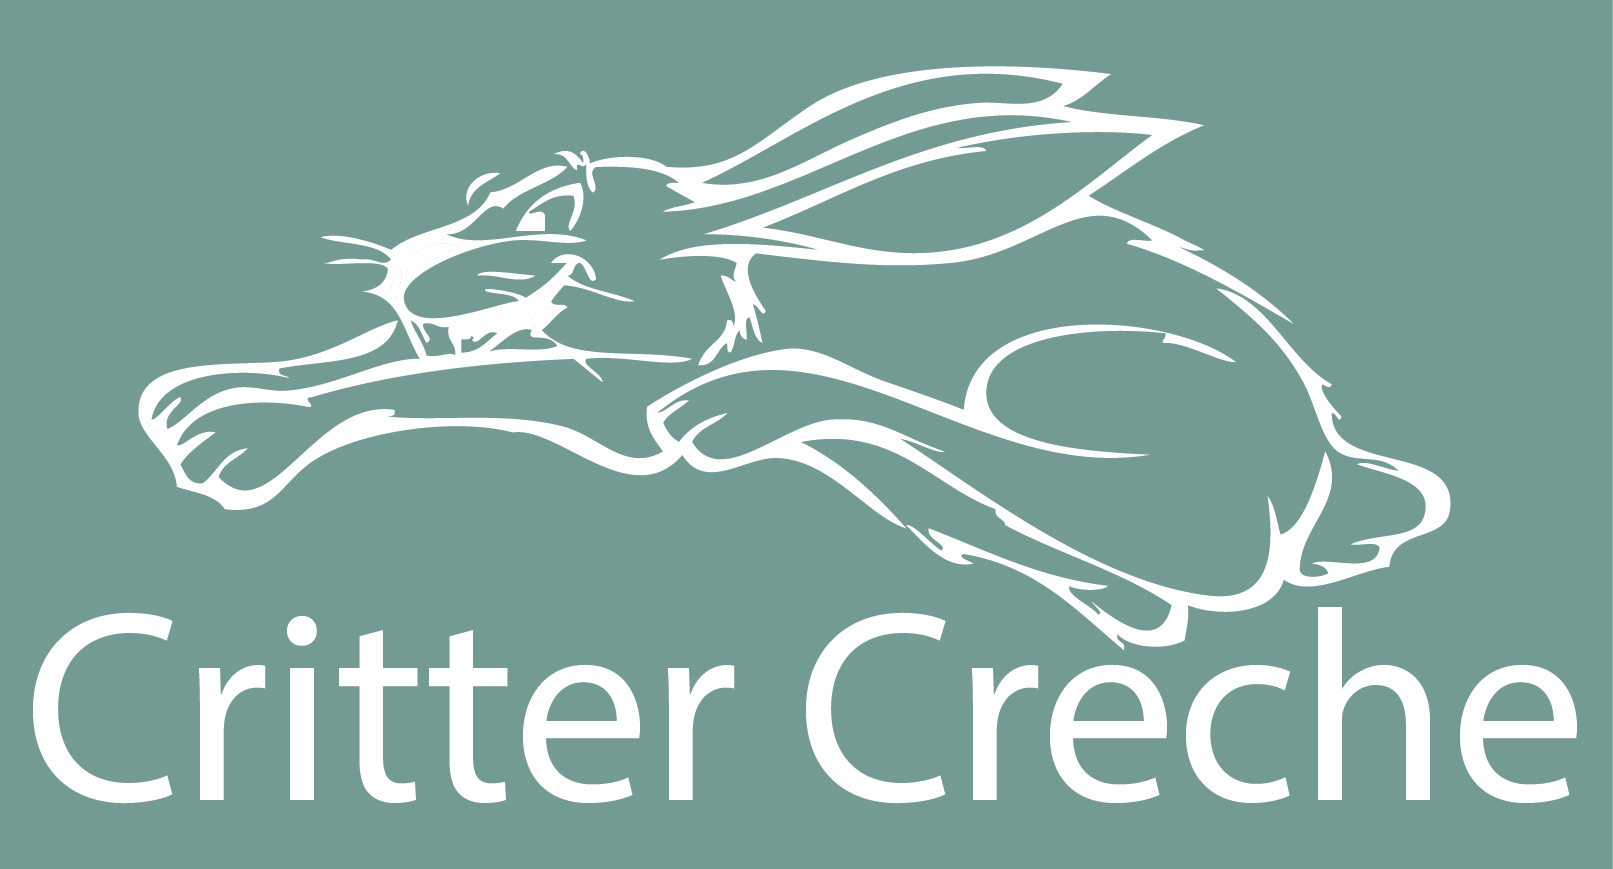 Critter Creche - Based in High Peak.